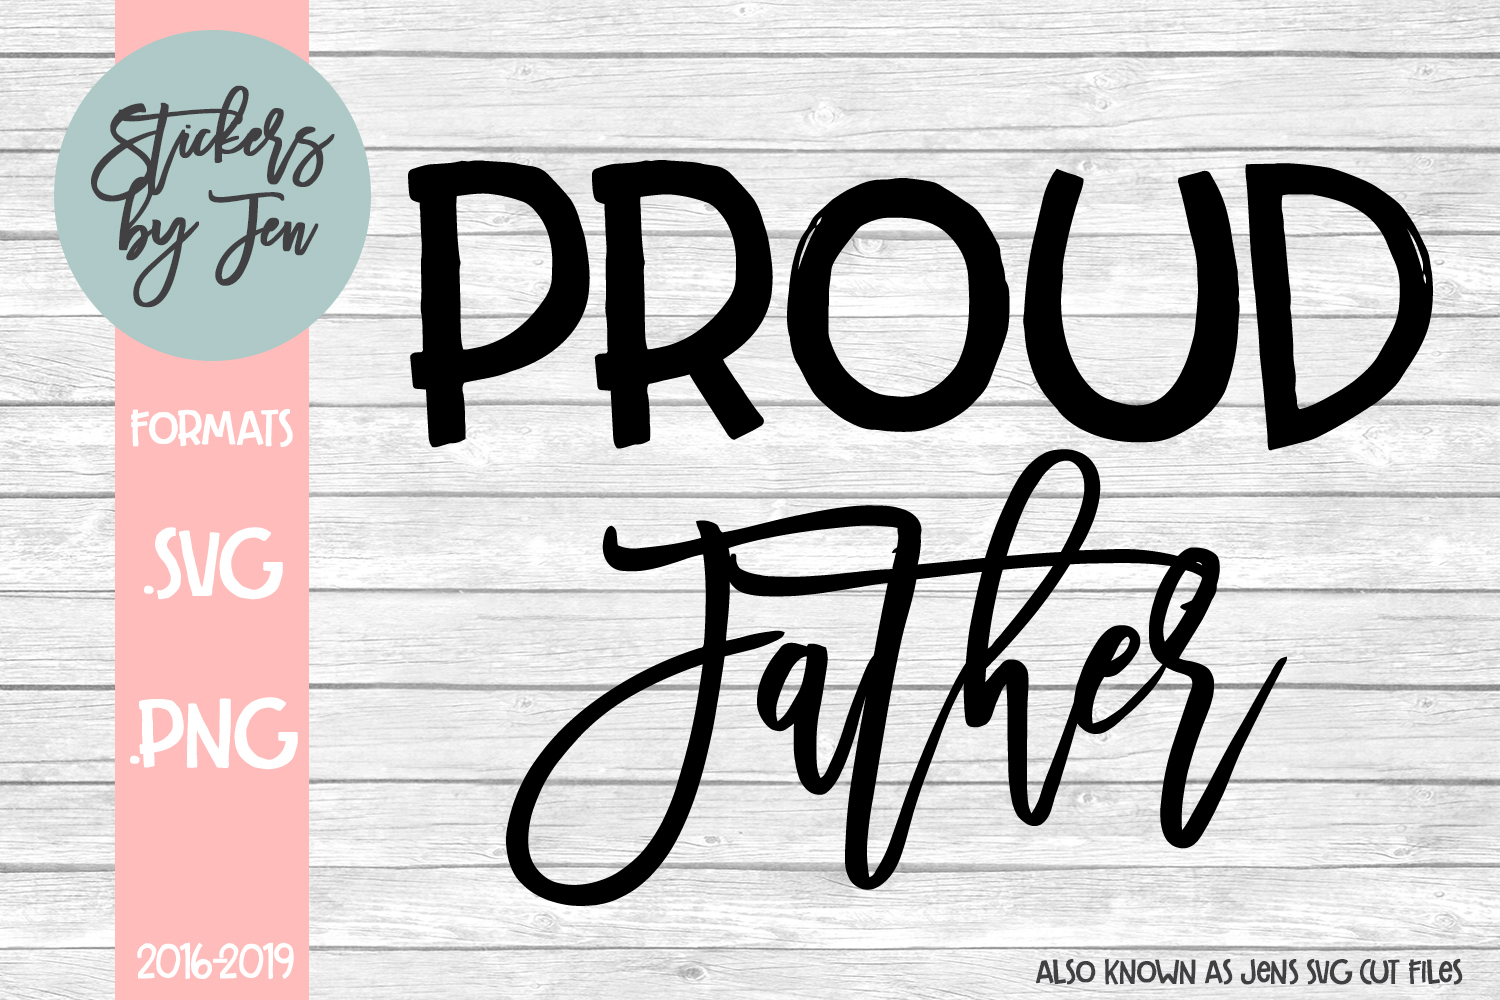 Proud Father svg cut file example image 1